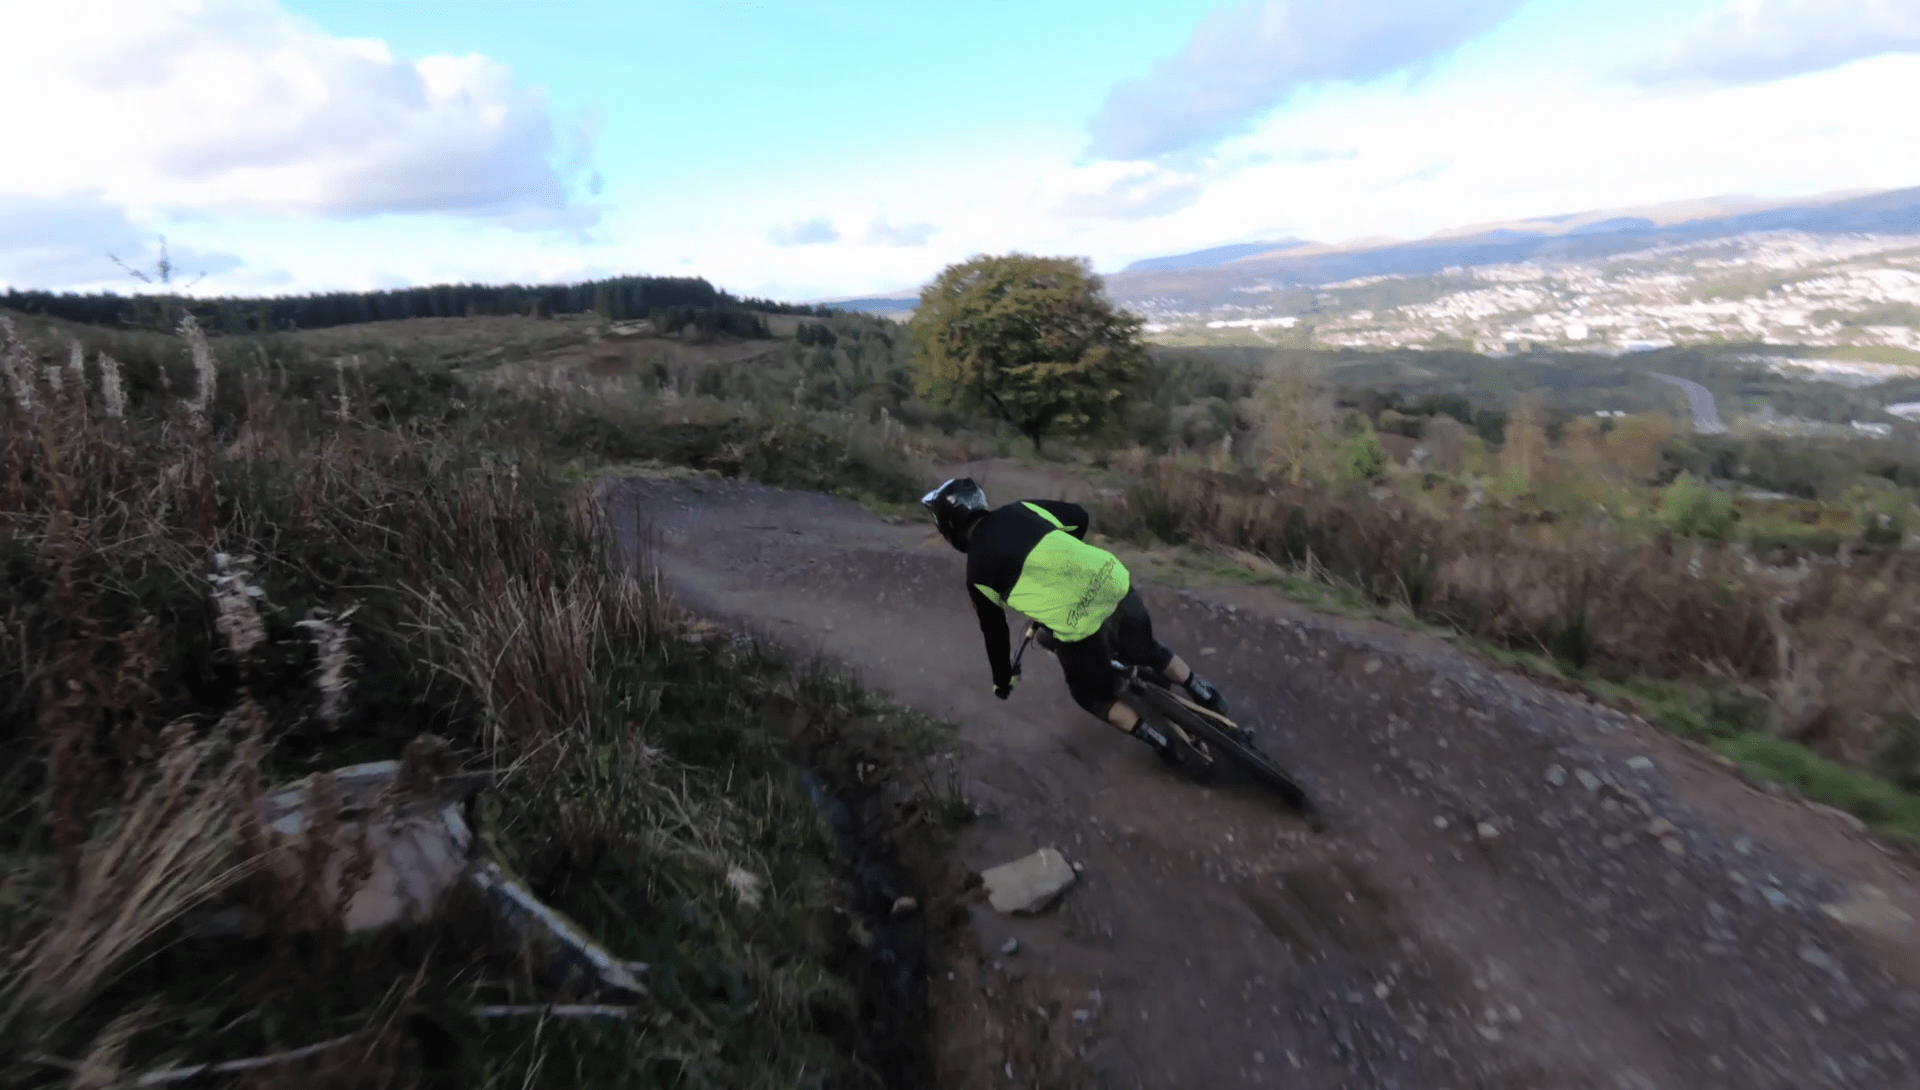 MBUK's Technical Editor Rob Weaver testing on the 2018 Santa Cruz Nomad at Bike Park Wales